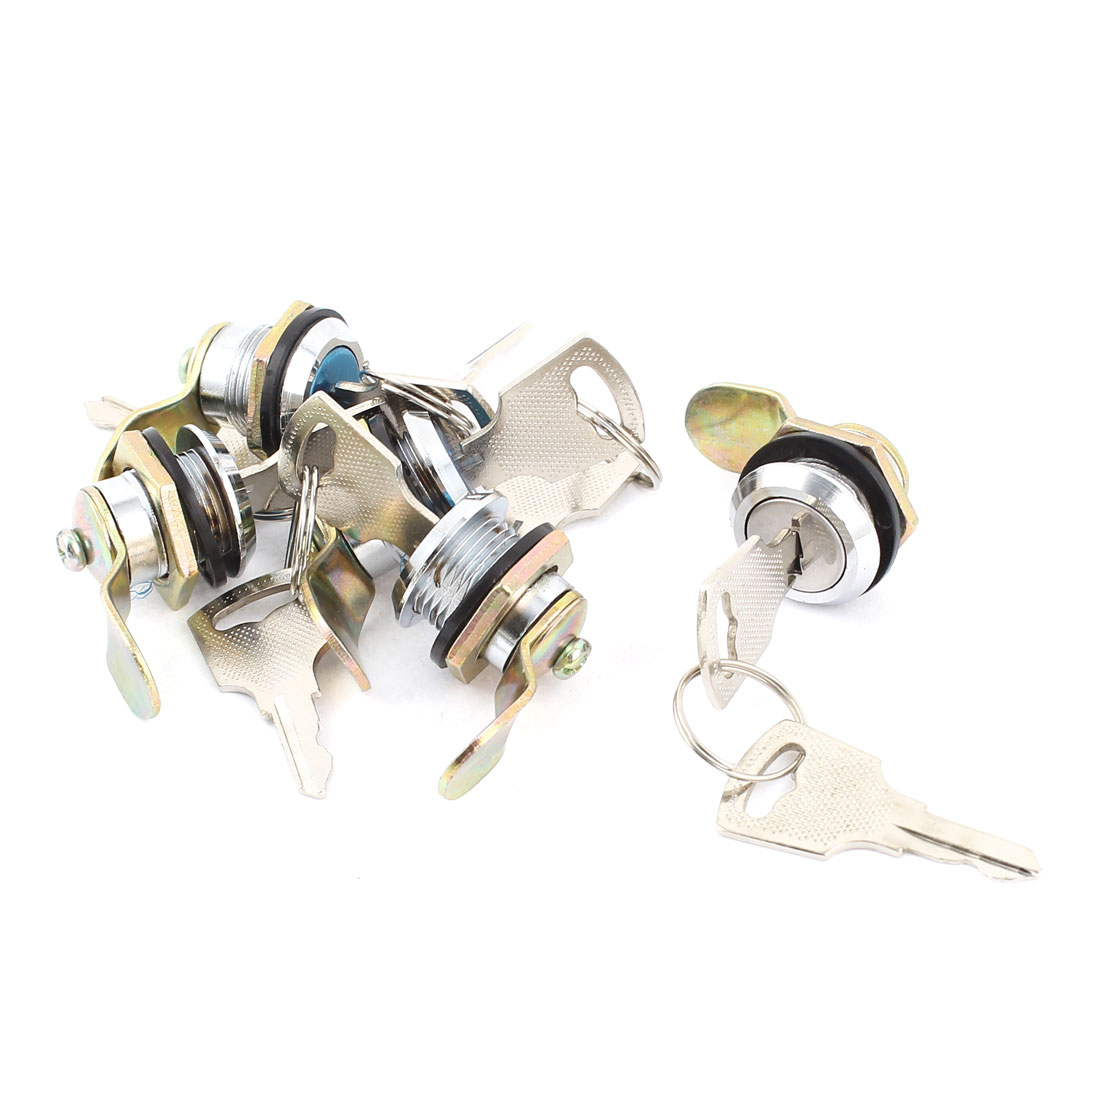 5pcs Metal Single Point Cylinder Cam Lock for Electrical Cabinet